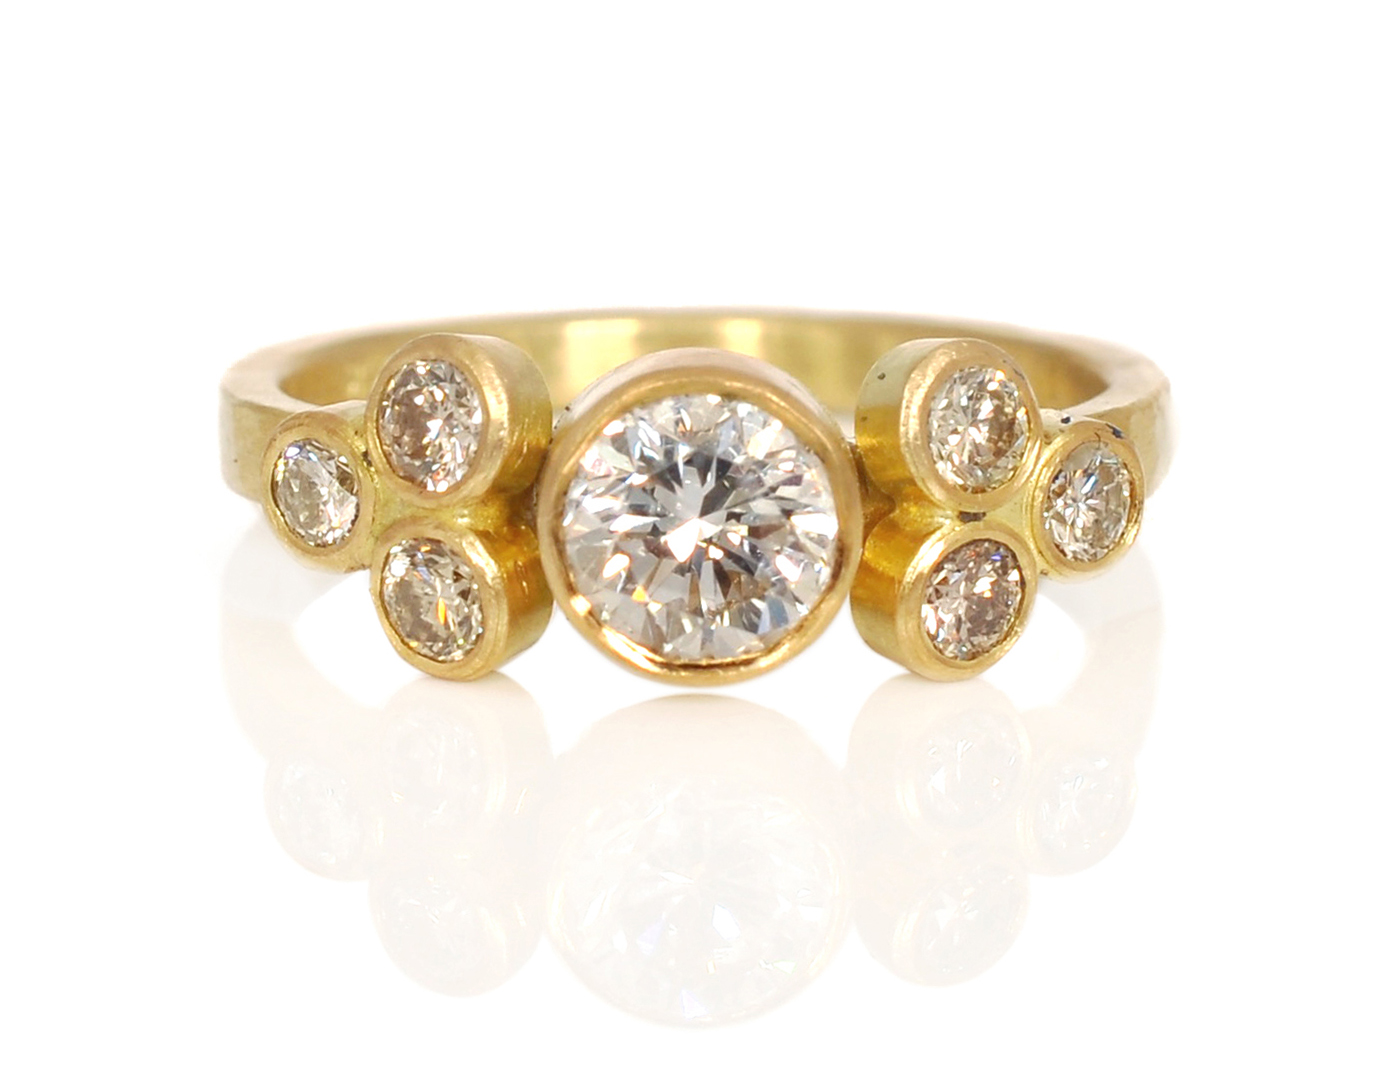 This absolutely stunning ring was created with family diamonds, a few champagne diamonds and 18k gold!